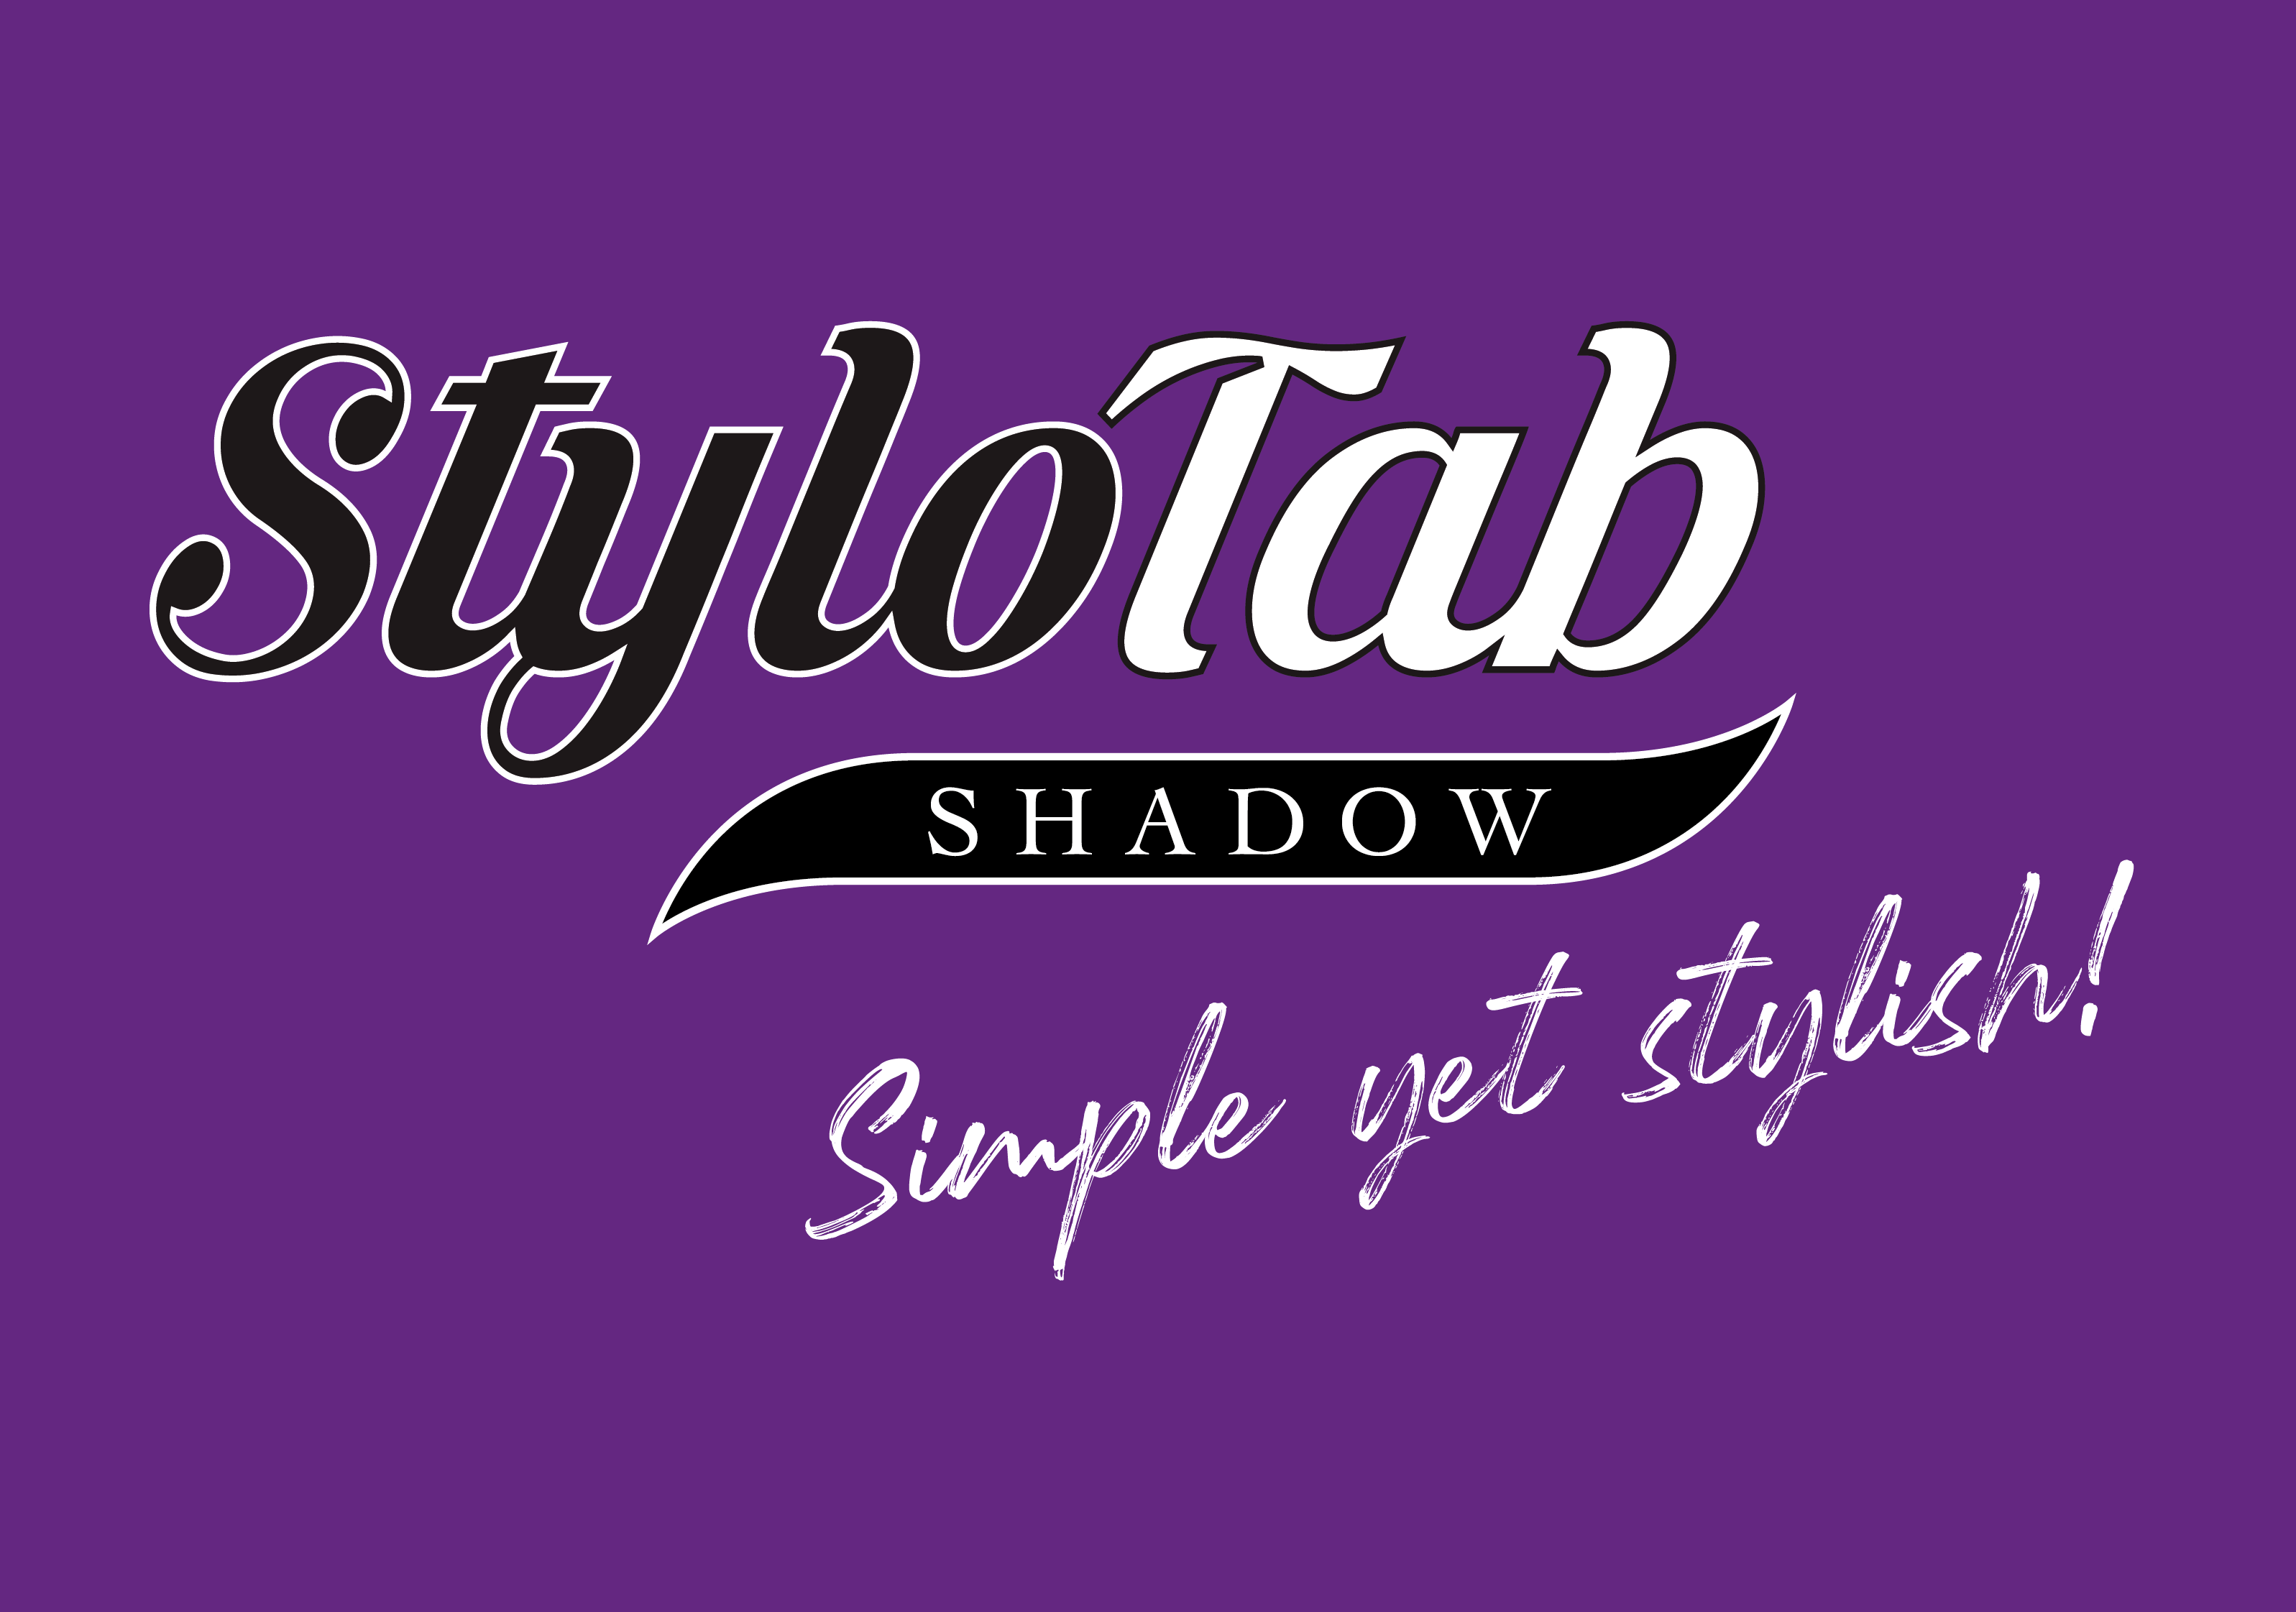 Stylotab Shadow